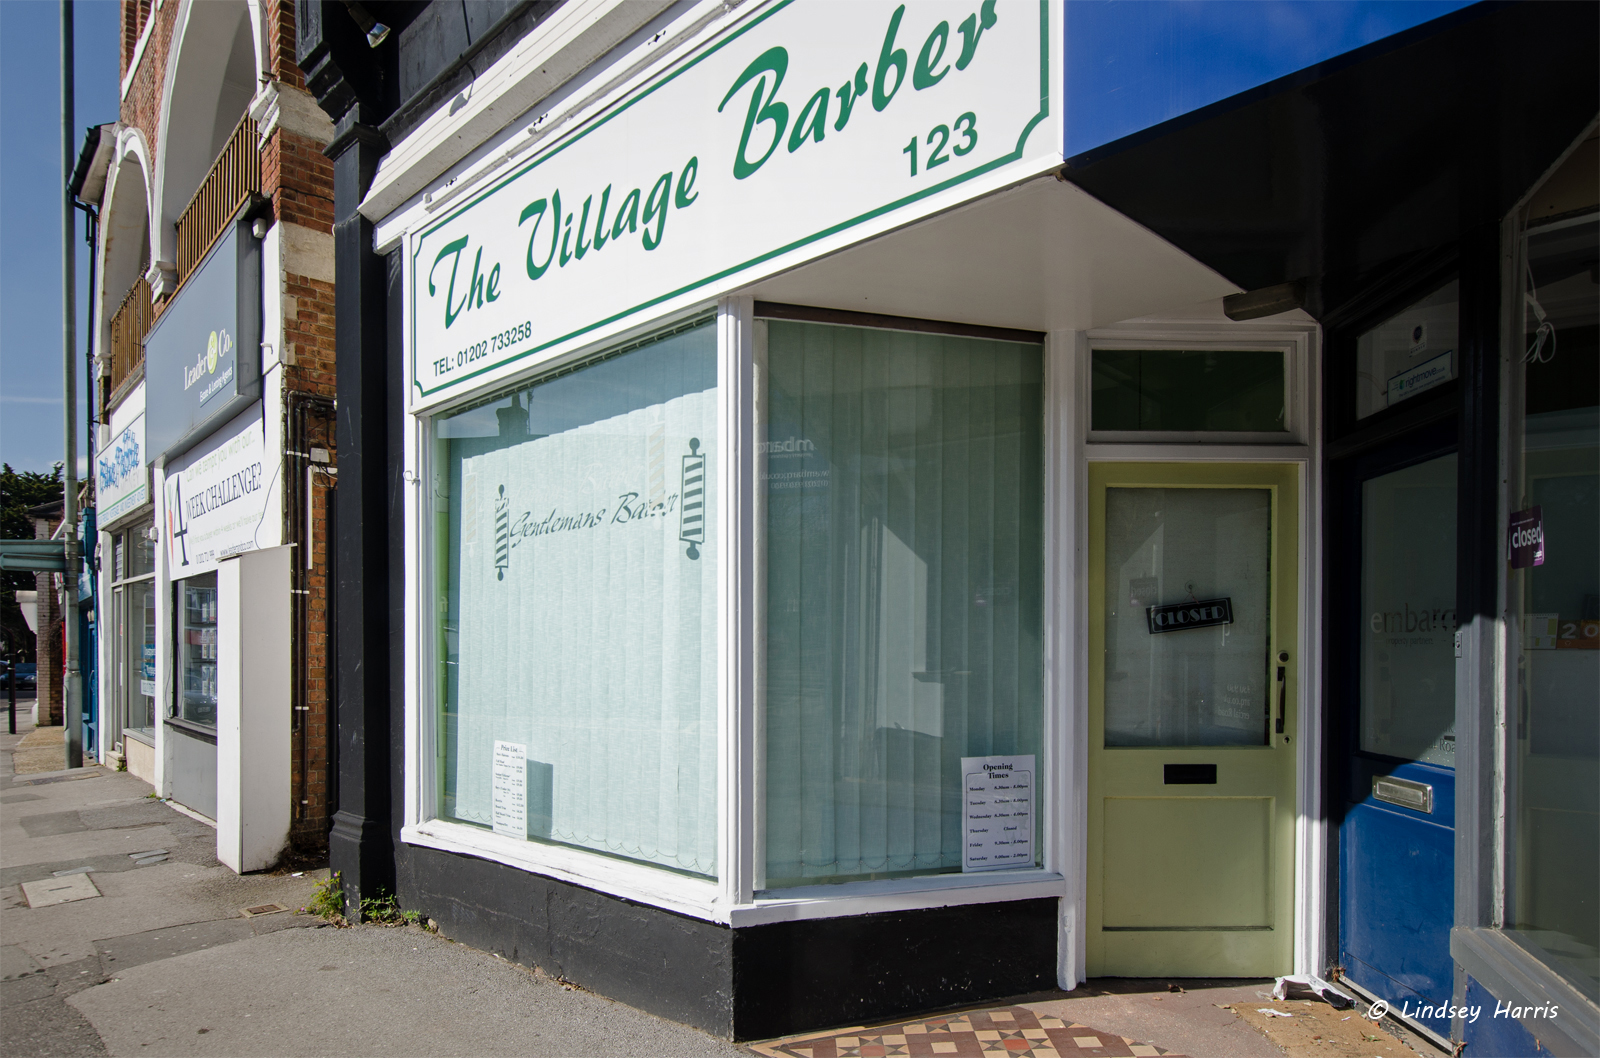 The Village Barber, Lower Parkstone (NO LONGER TRADING - 2017).